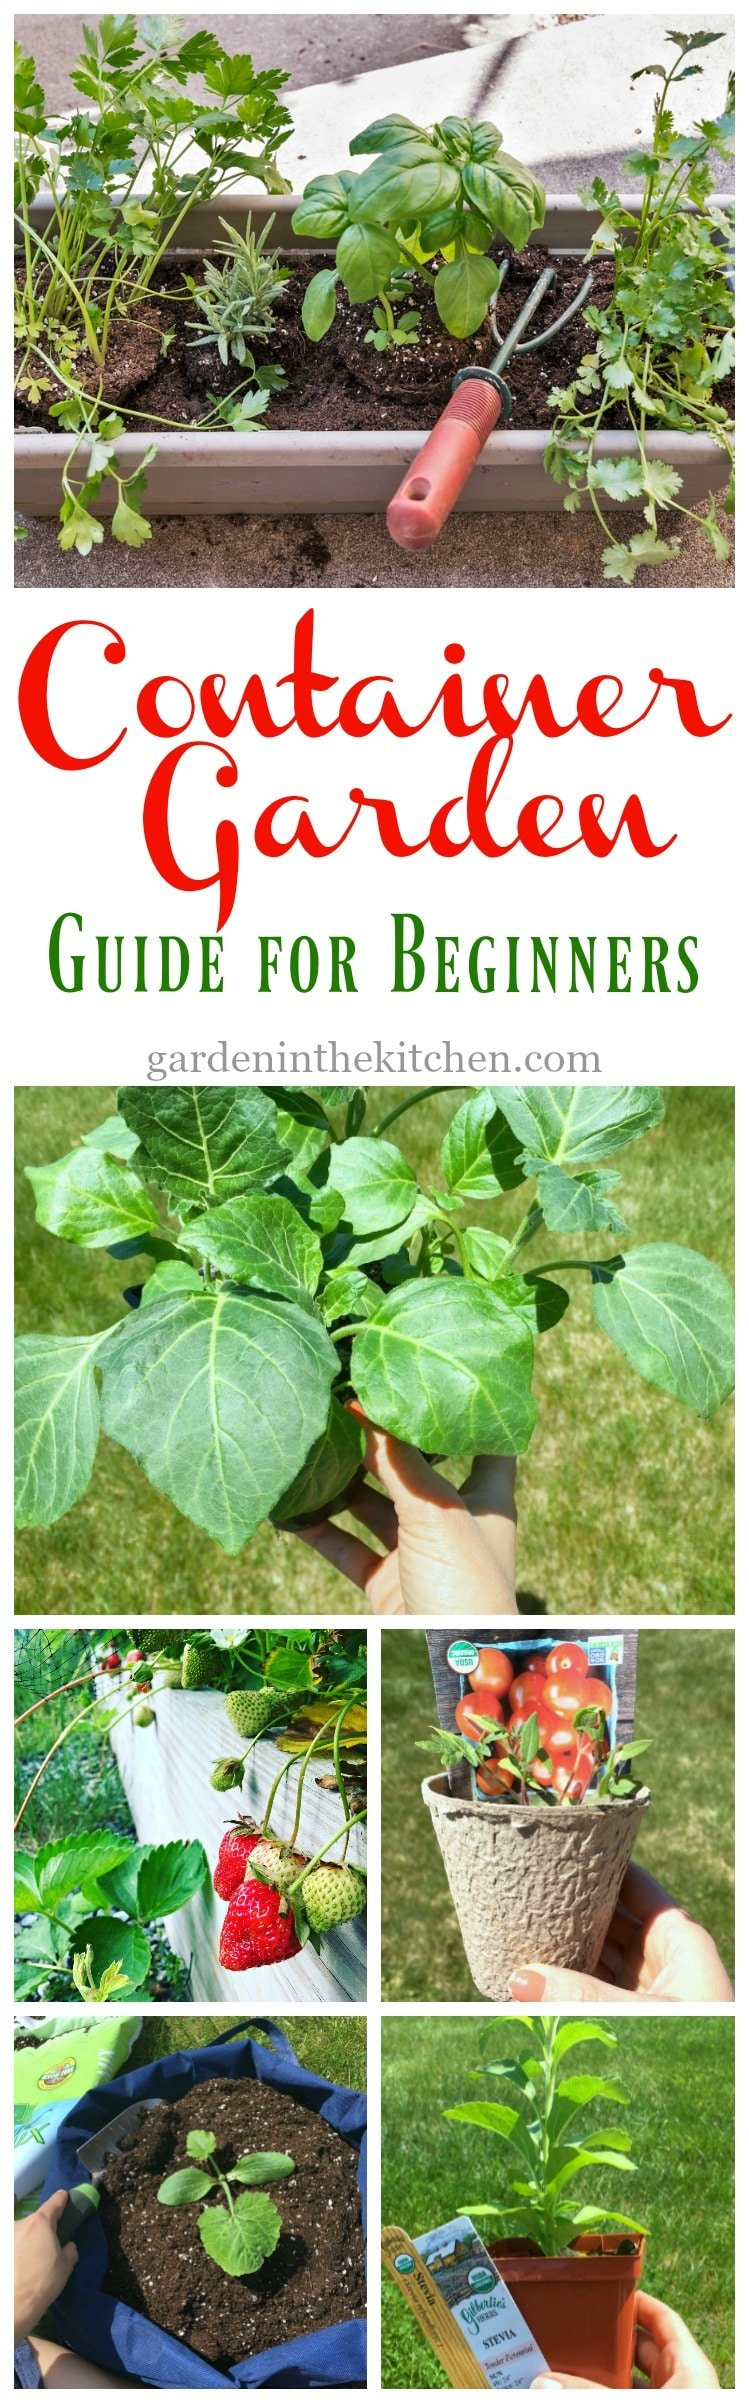 Container Garden Guide for Beginners